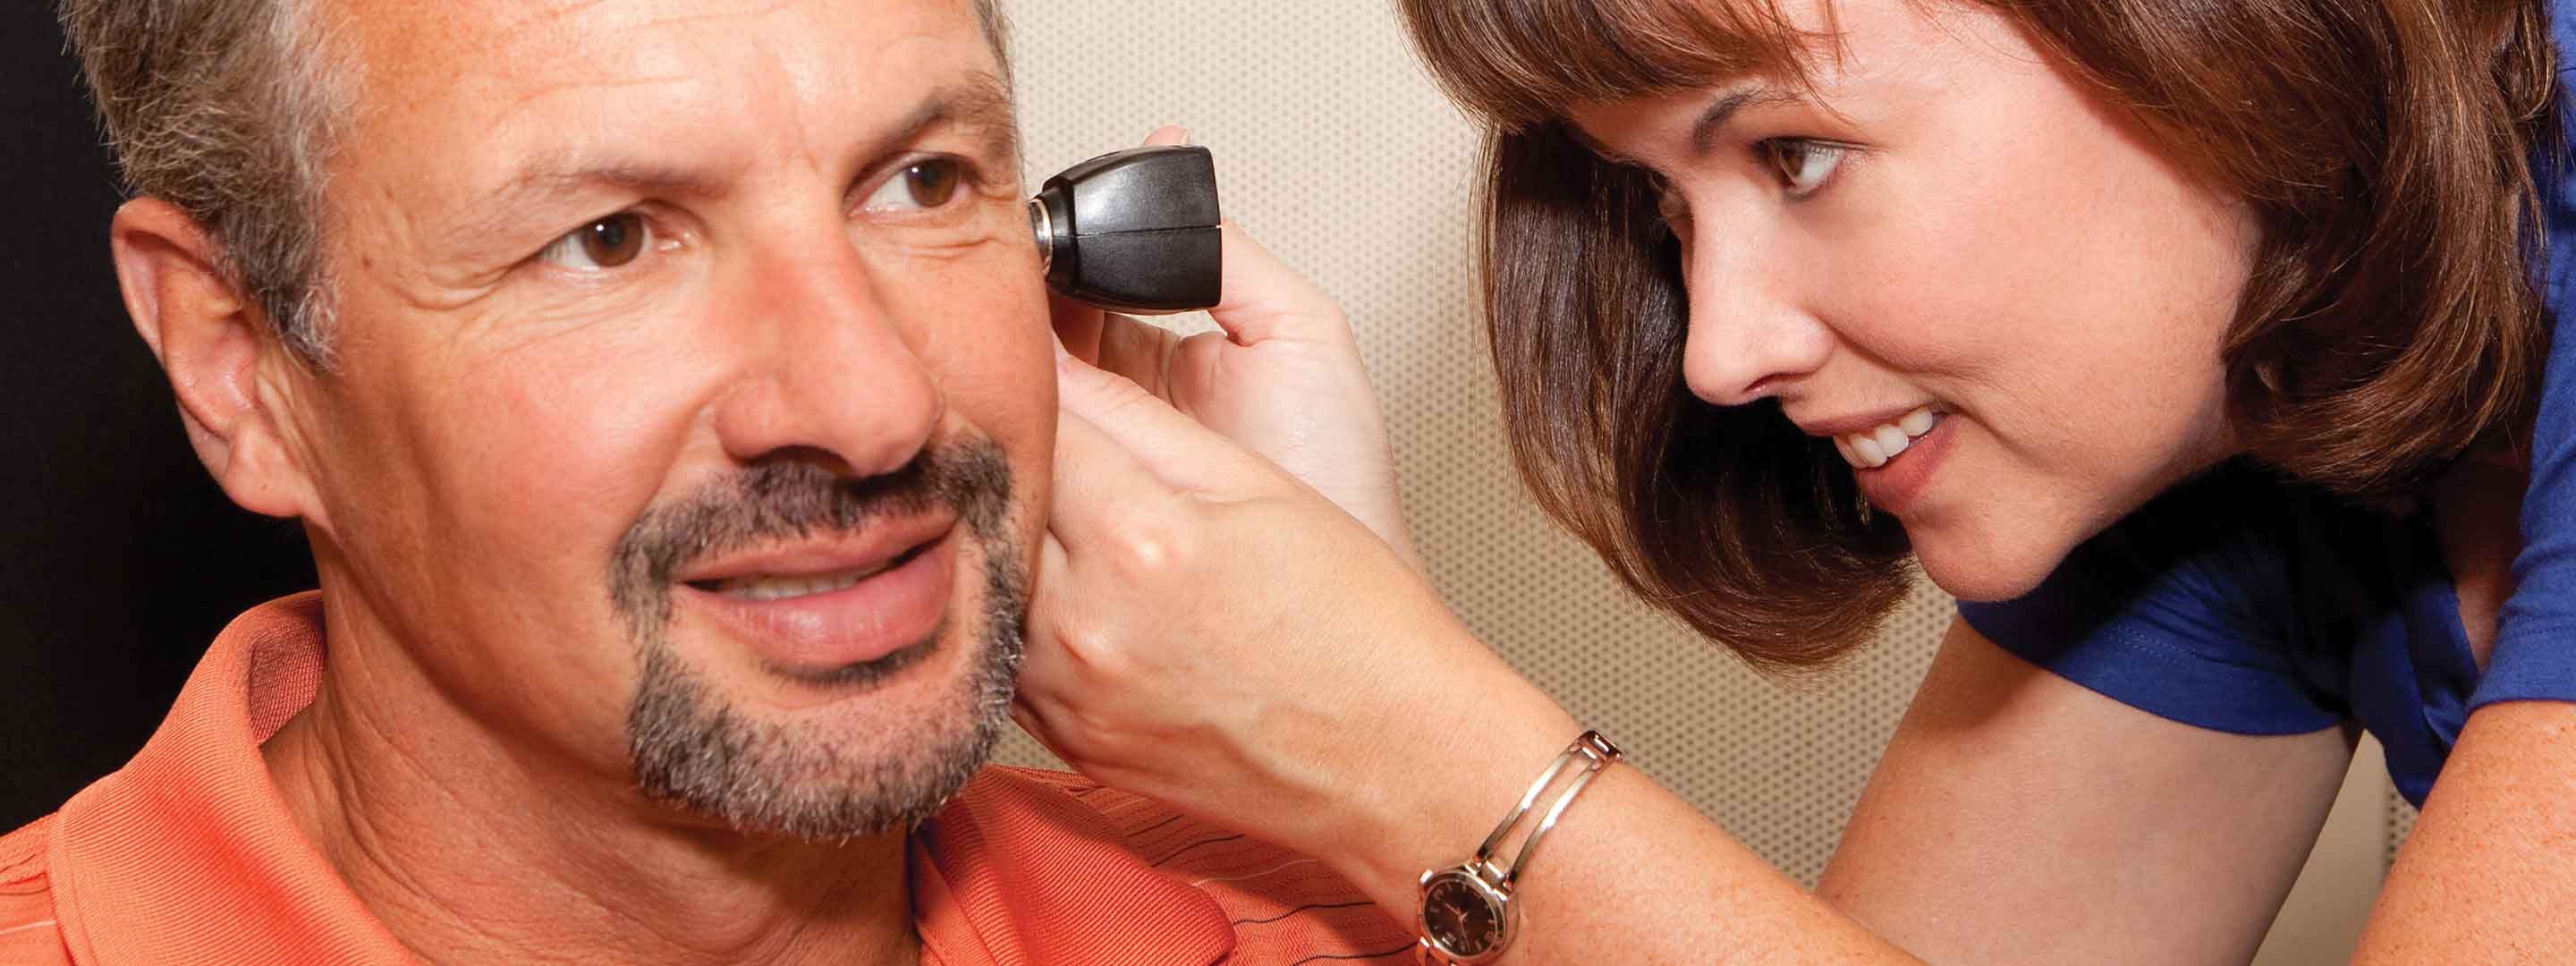 Hearing technology is expensive — make sure yours is protected